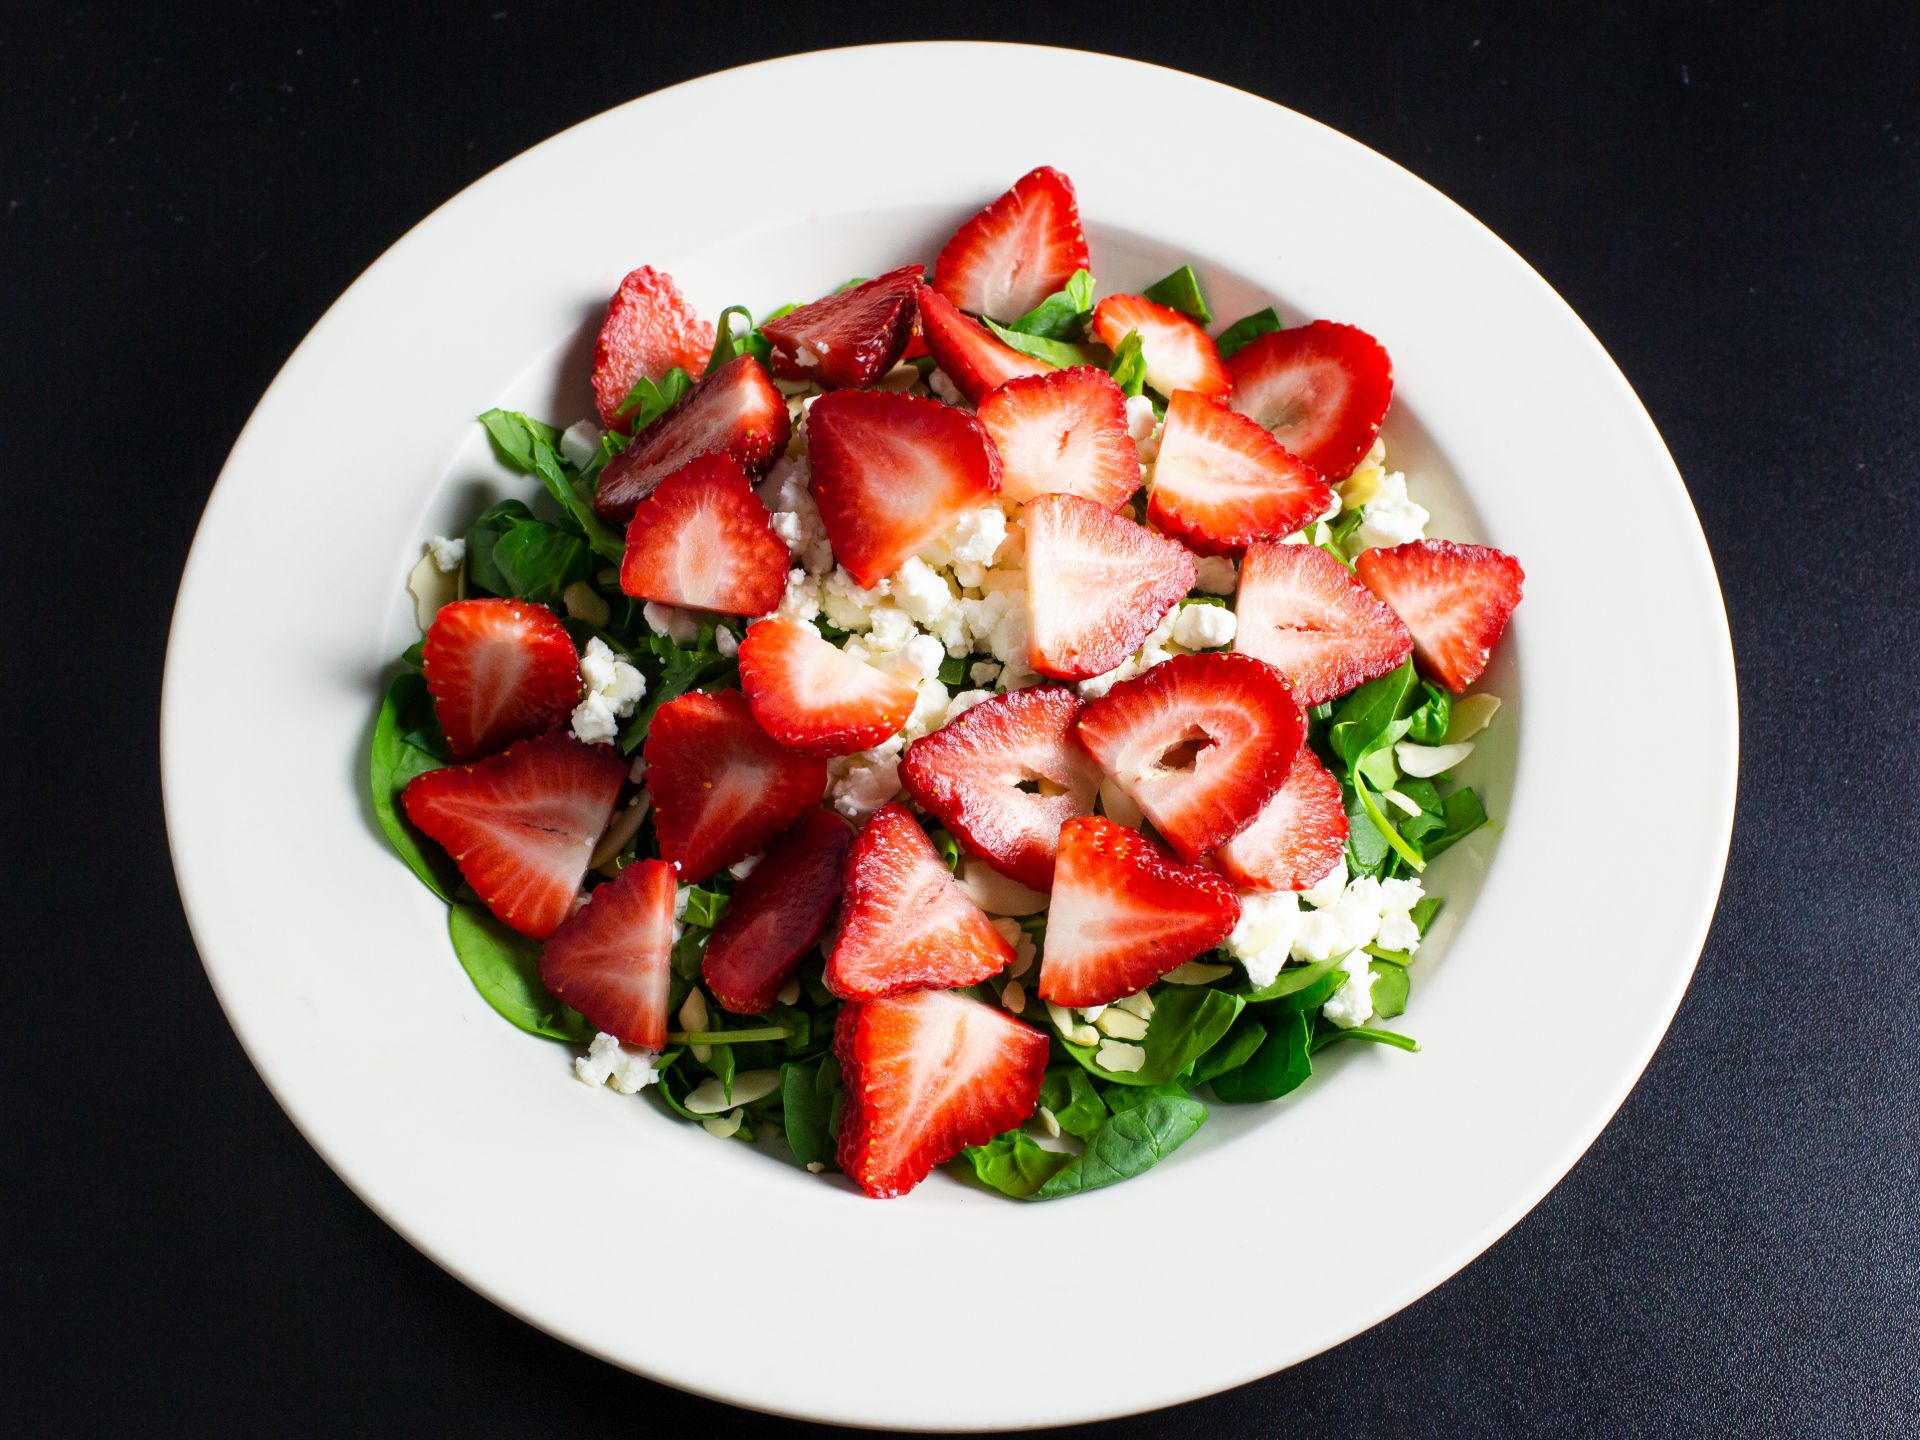 Strawberry and spinach salad with feta and sliced almonds